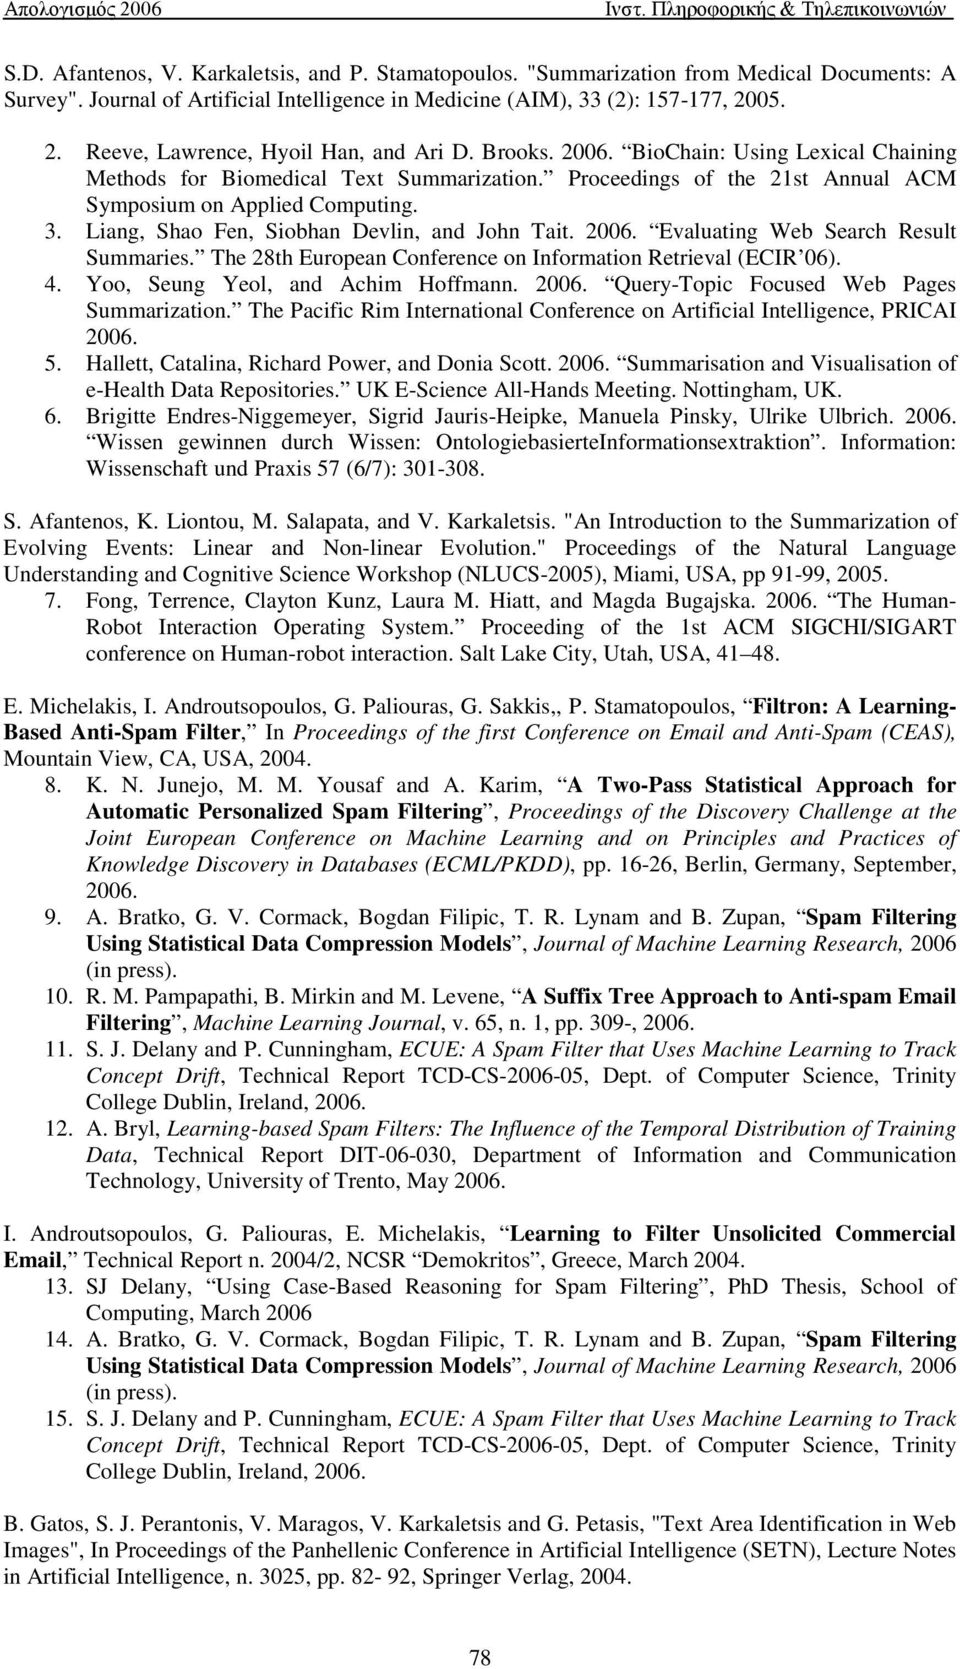 Proceedings of the 21st Annual ACM Symposium on Applied Computing. 3. Liang, Shao Fen, Siobhan Devlin, and John Tait. 2006. Evaluating Web Search Result Summaries.